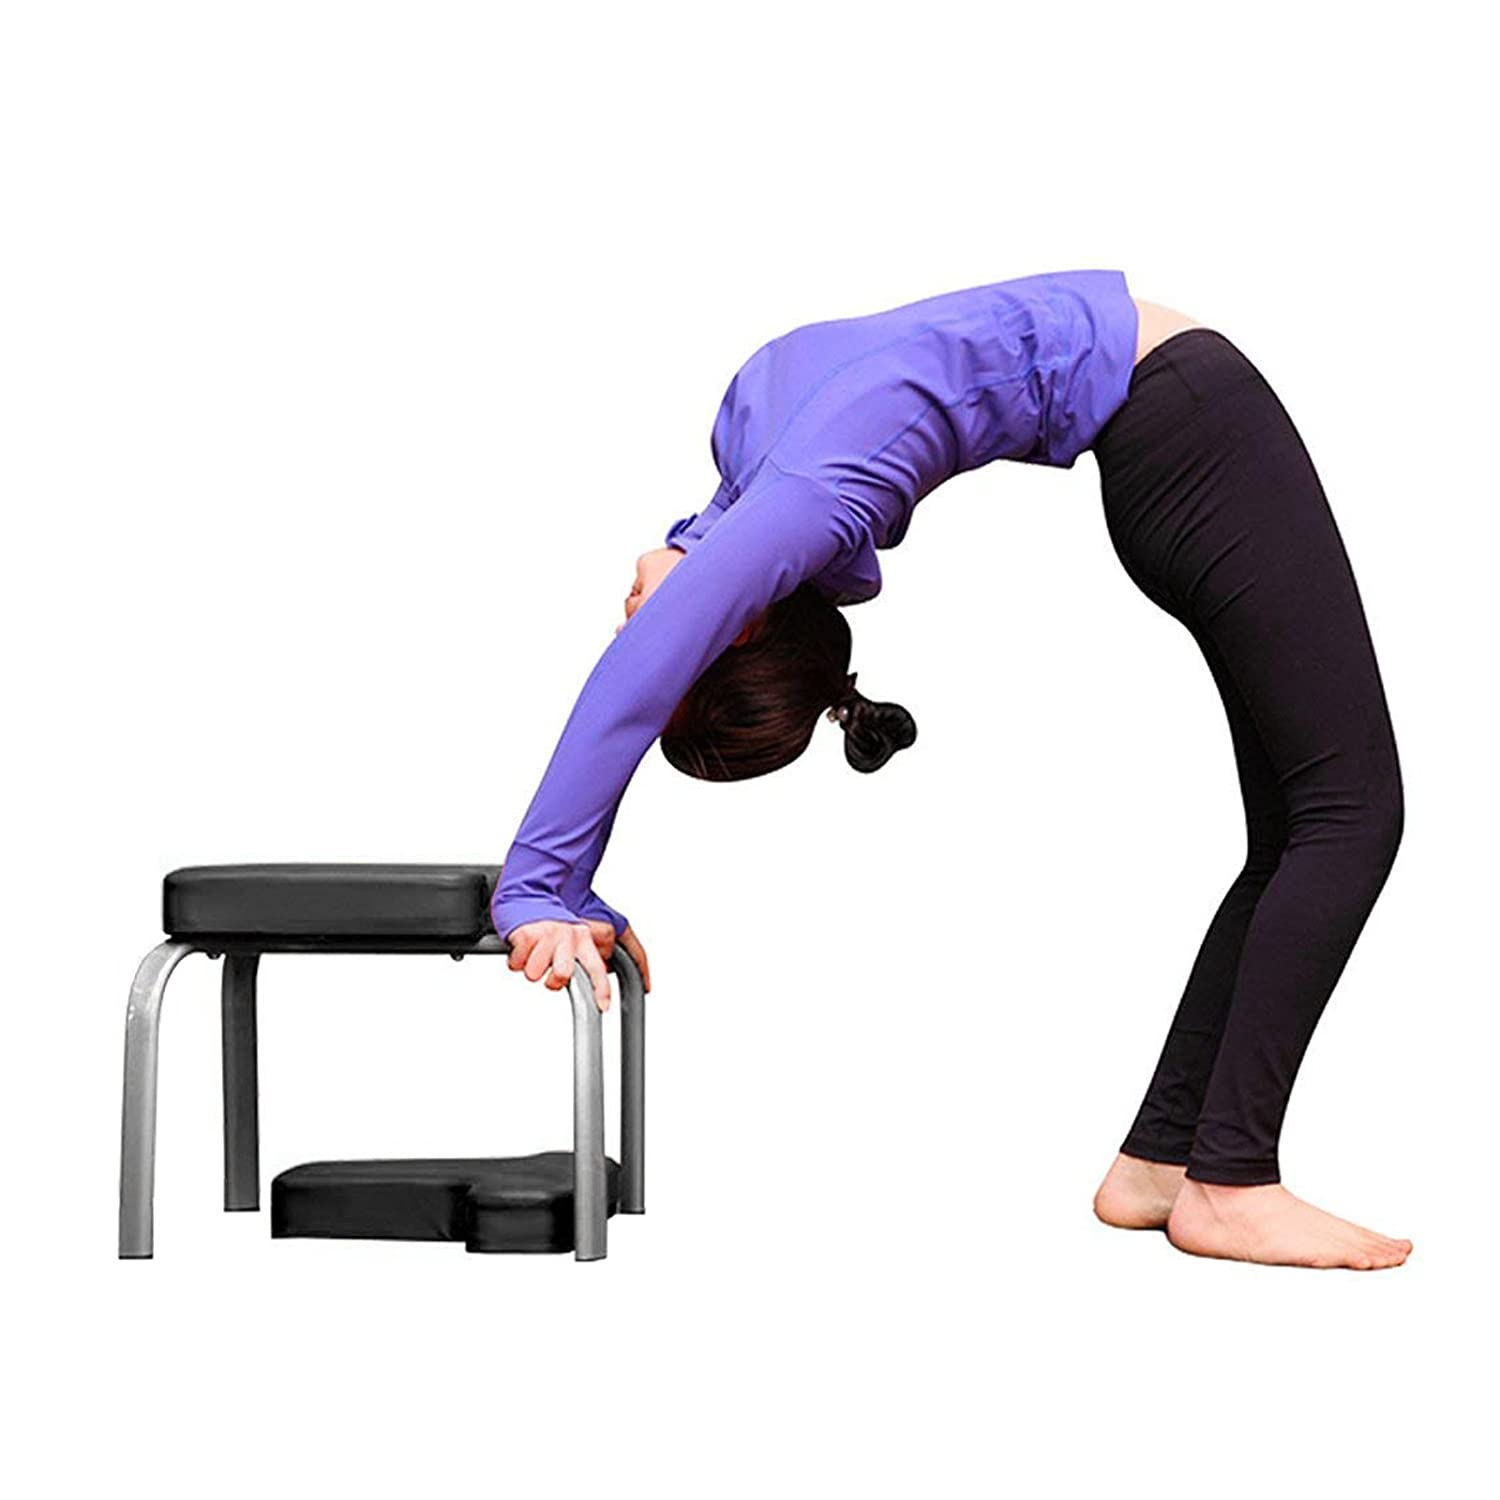 Popsport Headstand Bench Yoga Headstand Chair Balanced Body Headstand Bench for Practice Head Stand Shoulderstand Handstand and Various Yoga Poses